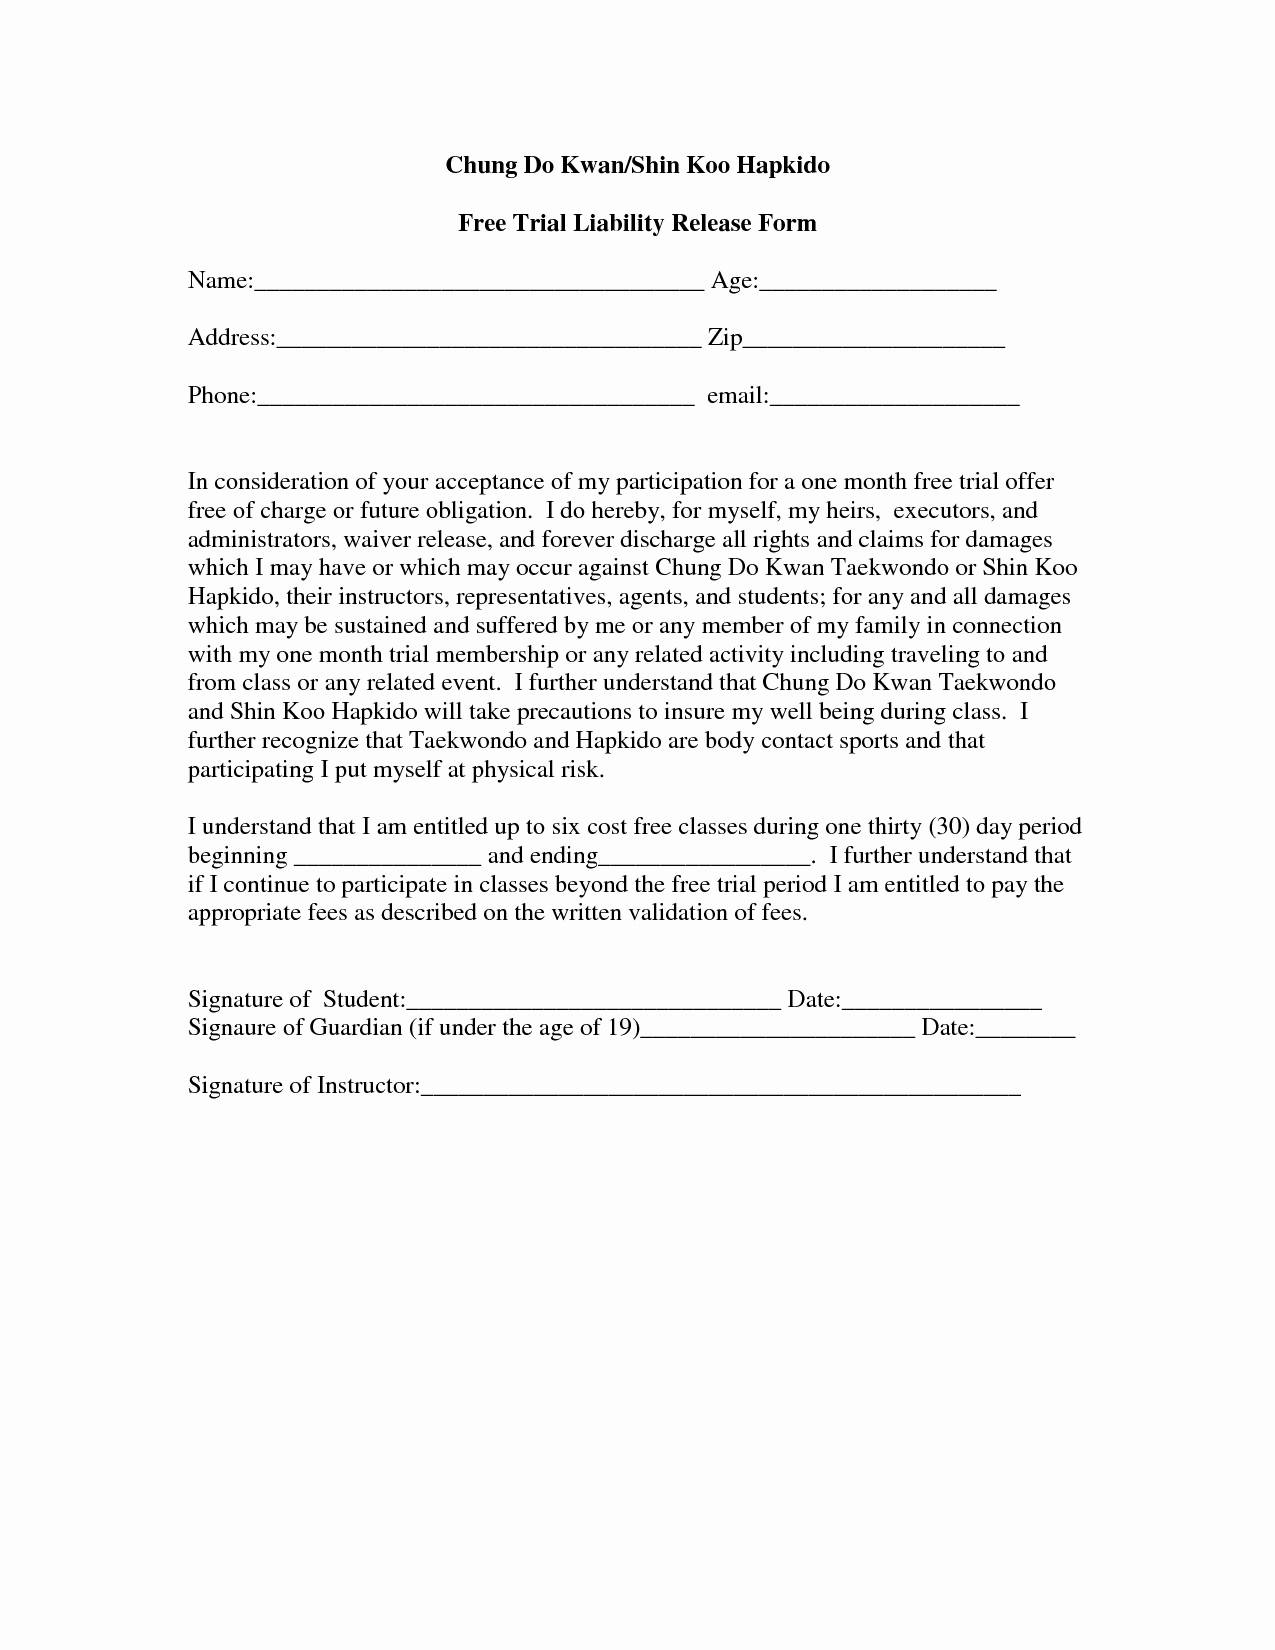 Waiver Form Template For Gym